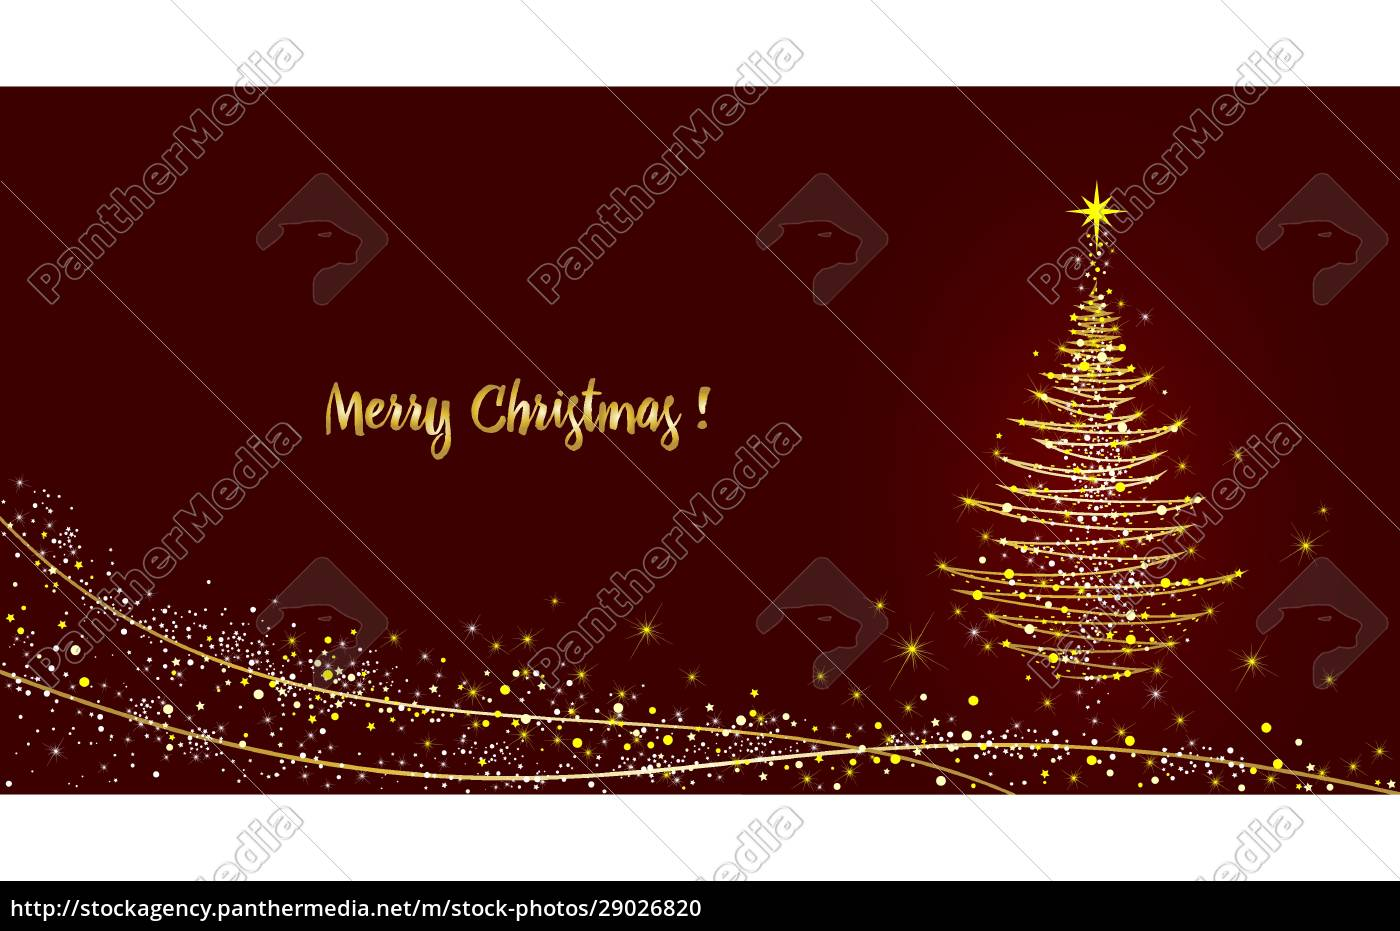 greeting, card, christmas, tree, shining, with - 29026820